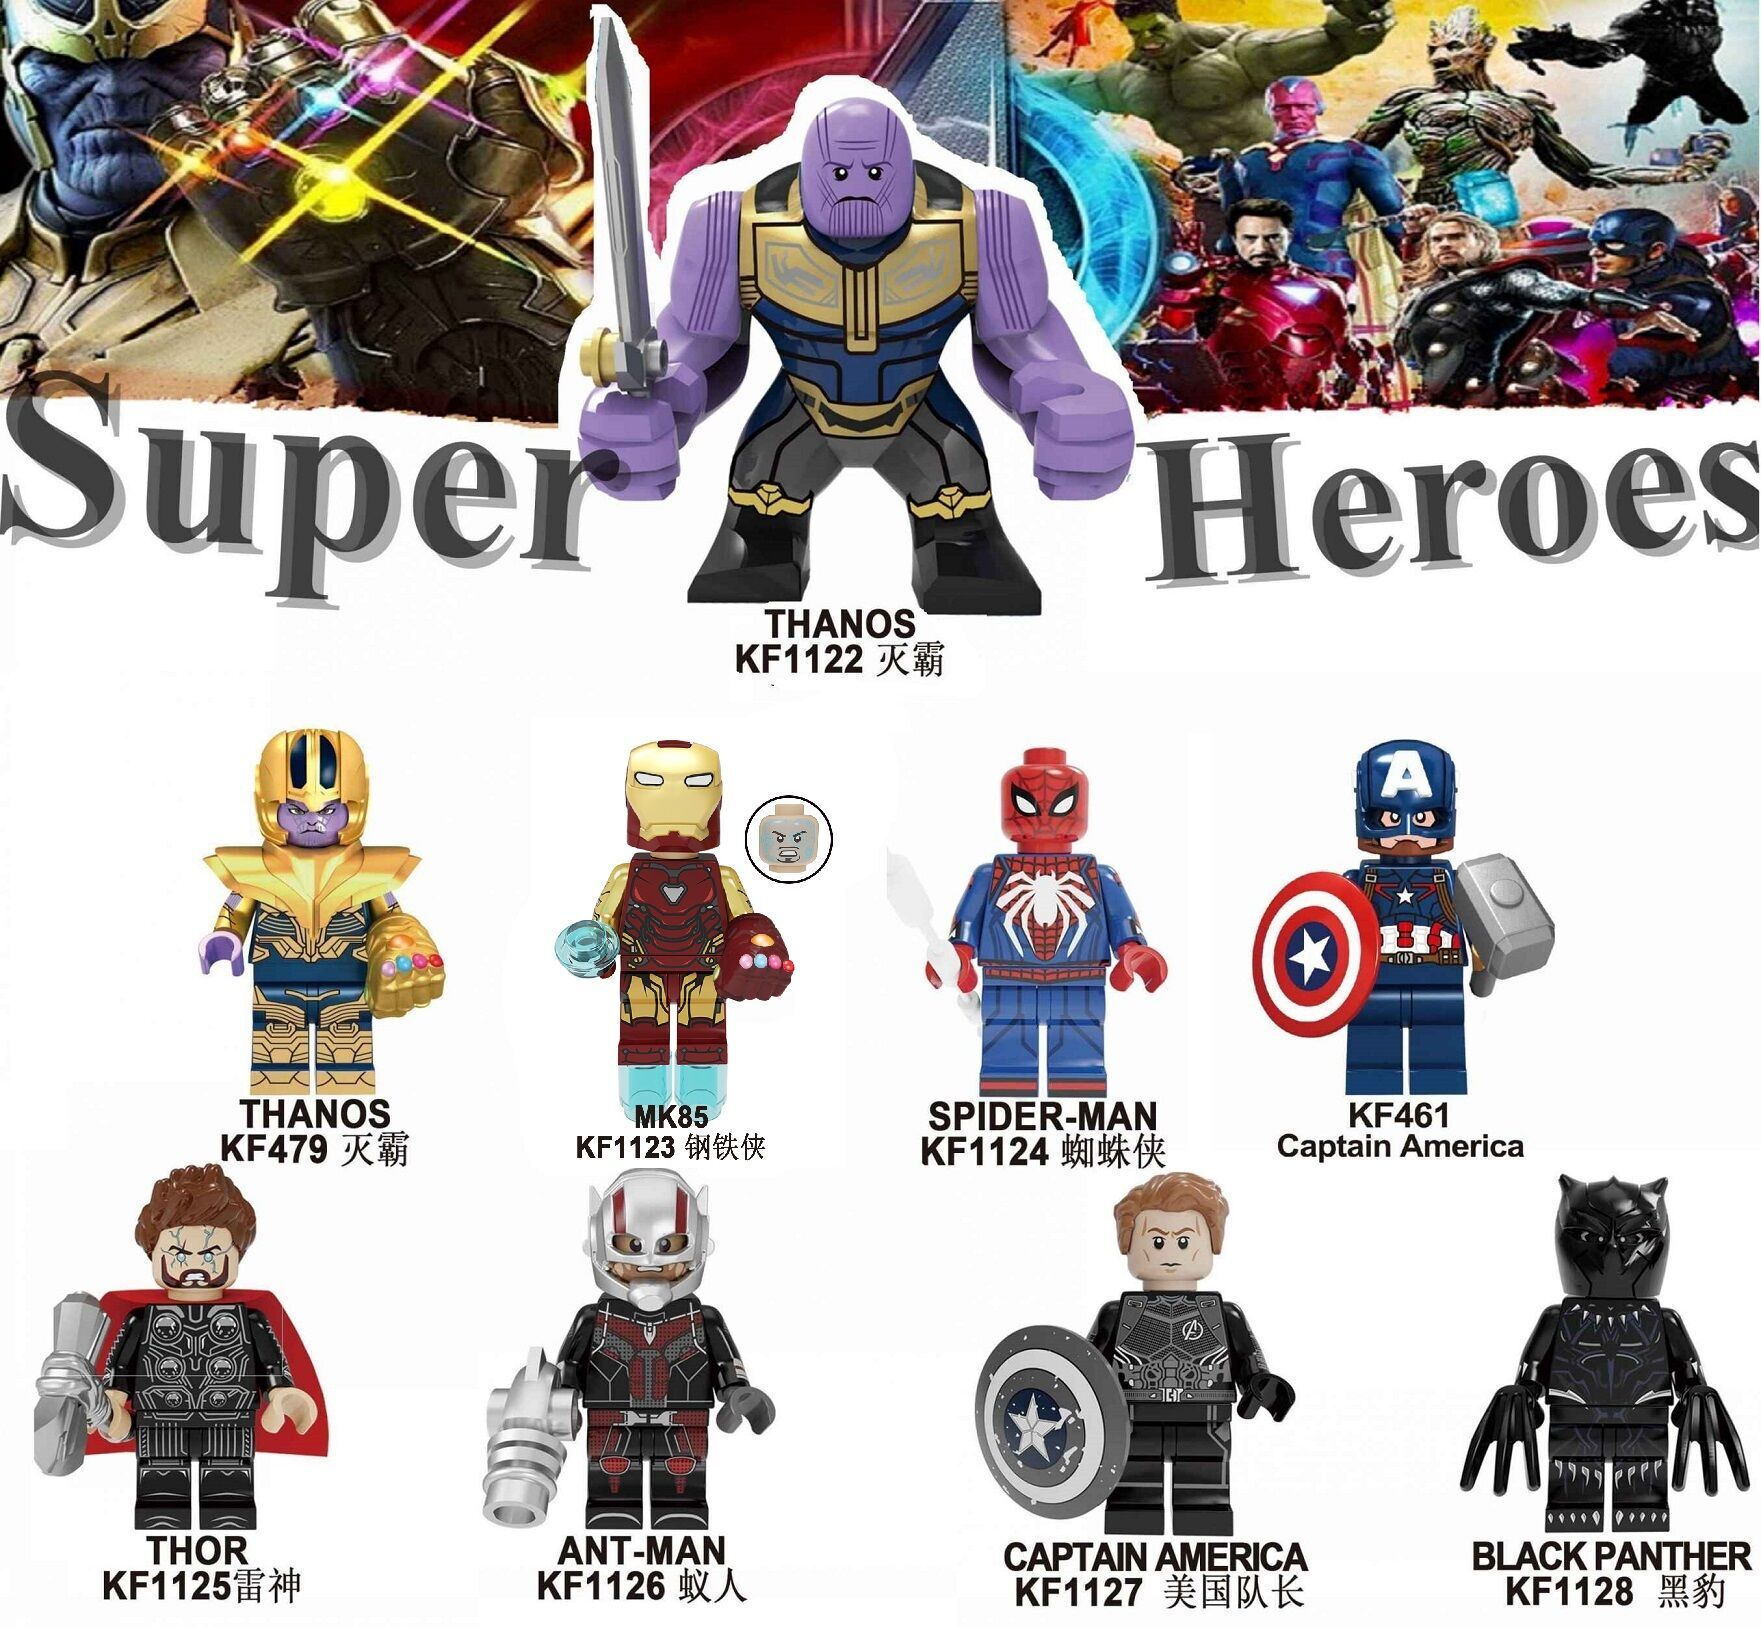 50Pcs Sale Super Heroes Avengers4 INFINITY WAR Thanos Dolls Spider-Man Thor Ant-Man Captain Building Blocks Children Toys <font><b>KF6087</b></font> image